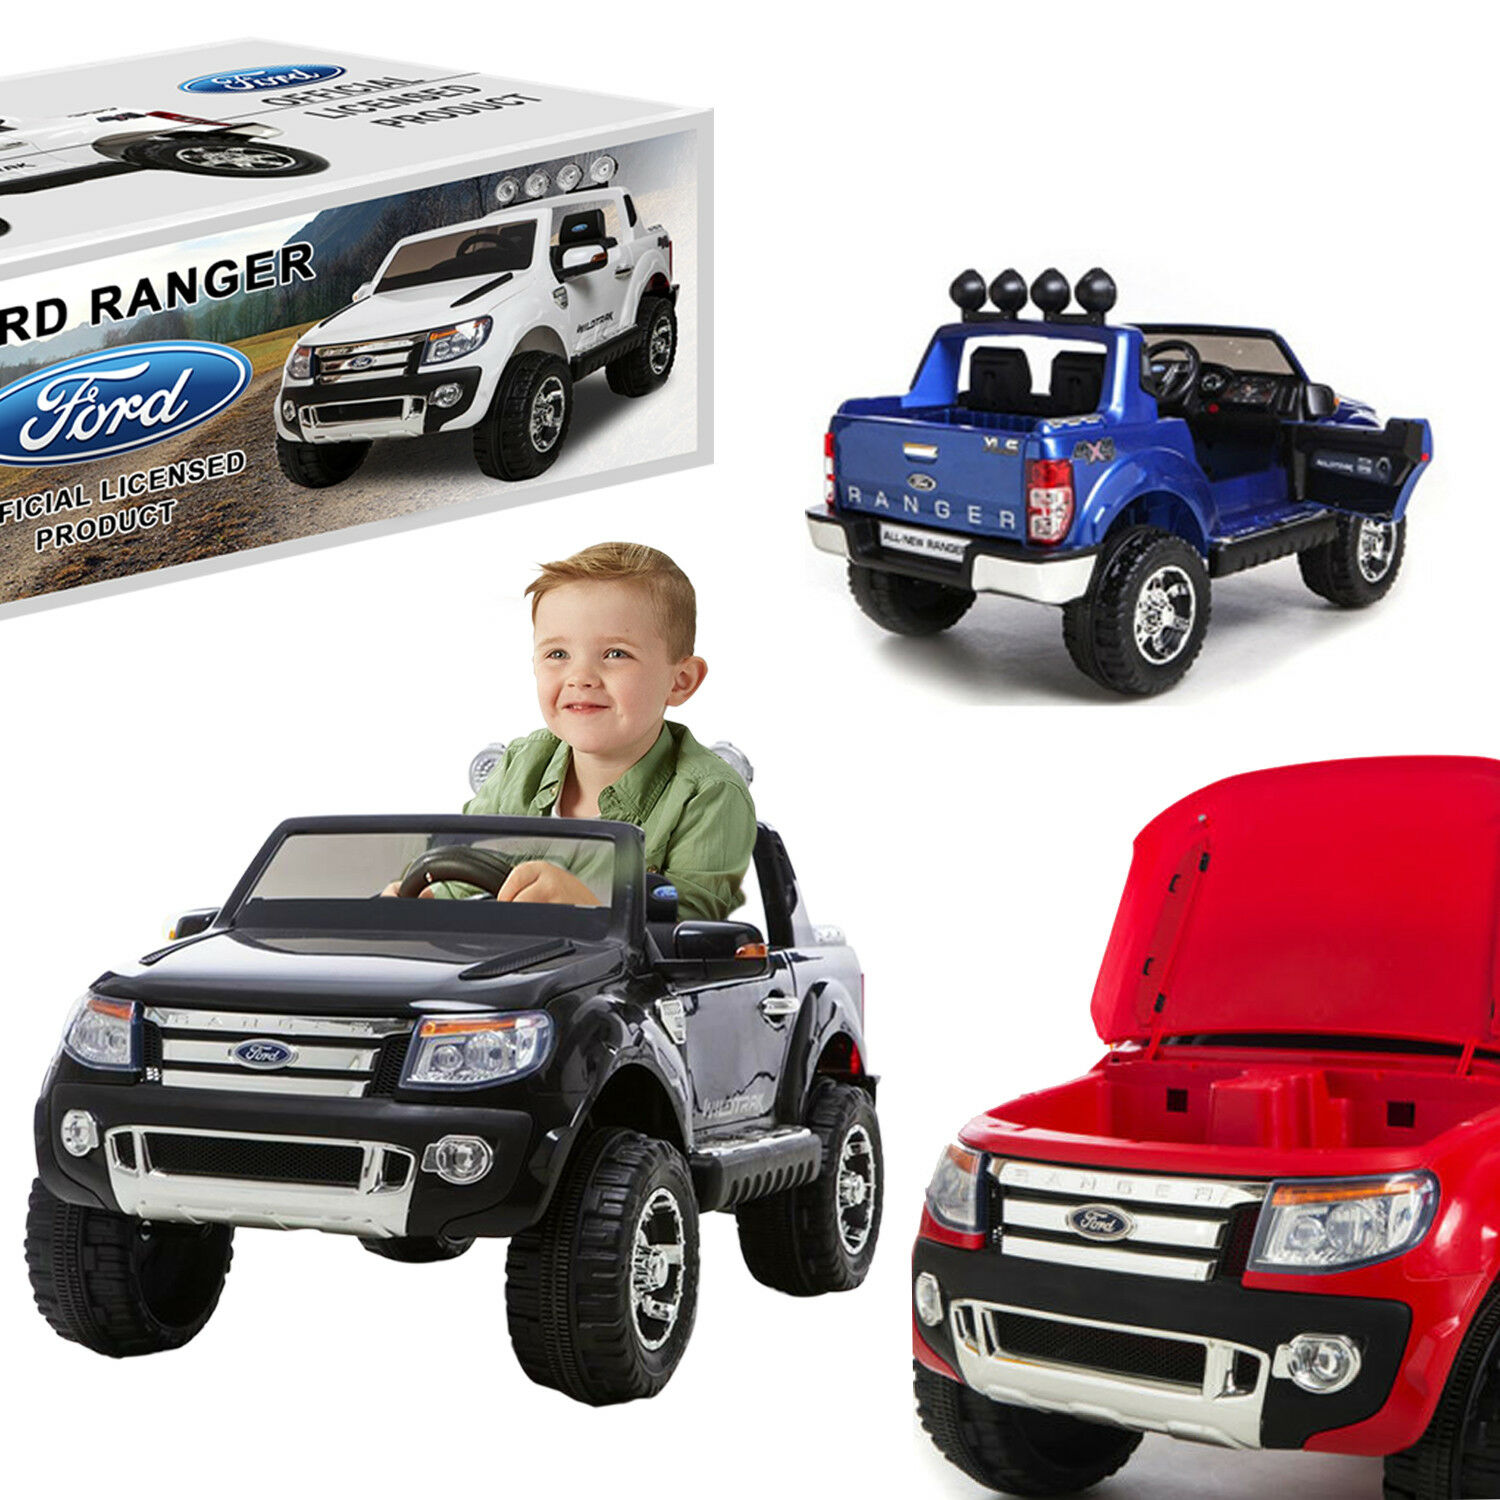 Ride on Ford Ranger bambini Auto Jeep 4x4 Truck Parental Remote Control 12v Battery